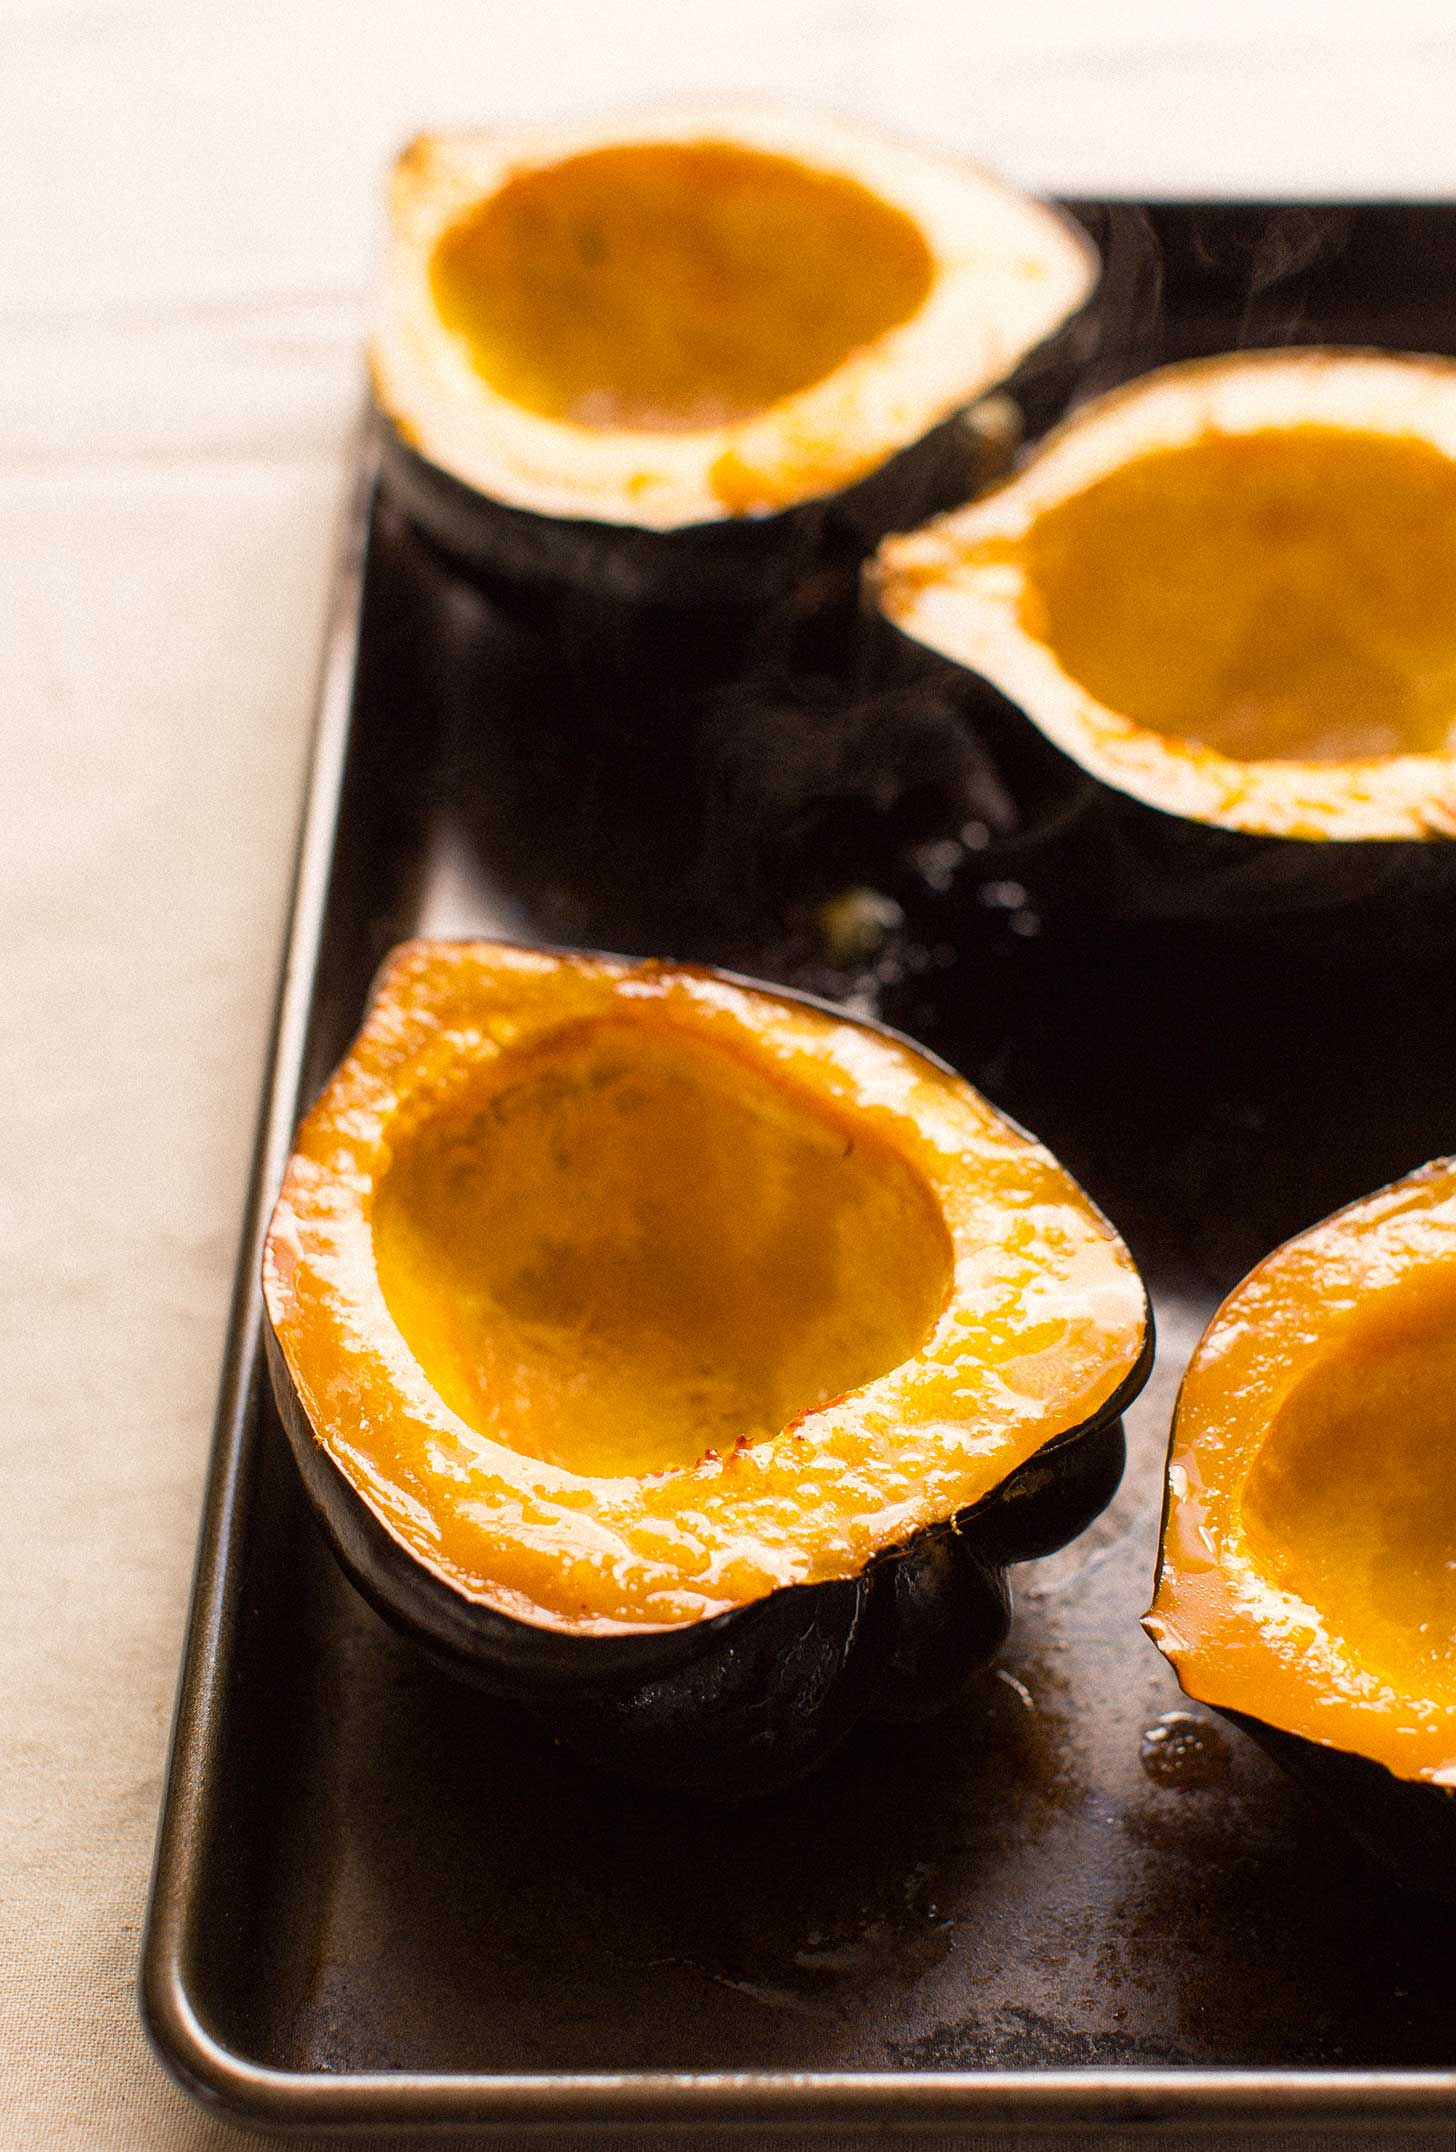 Freshly baked acorn squash halves for serving the Acorn Squash Soup